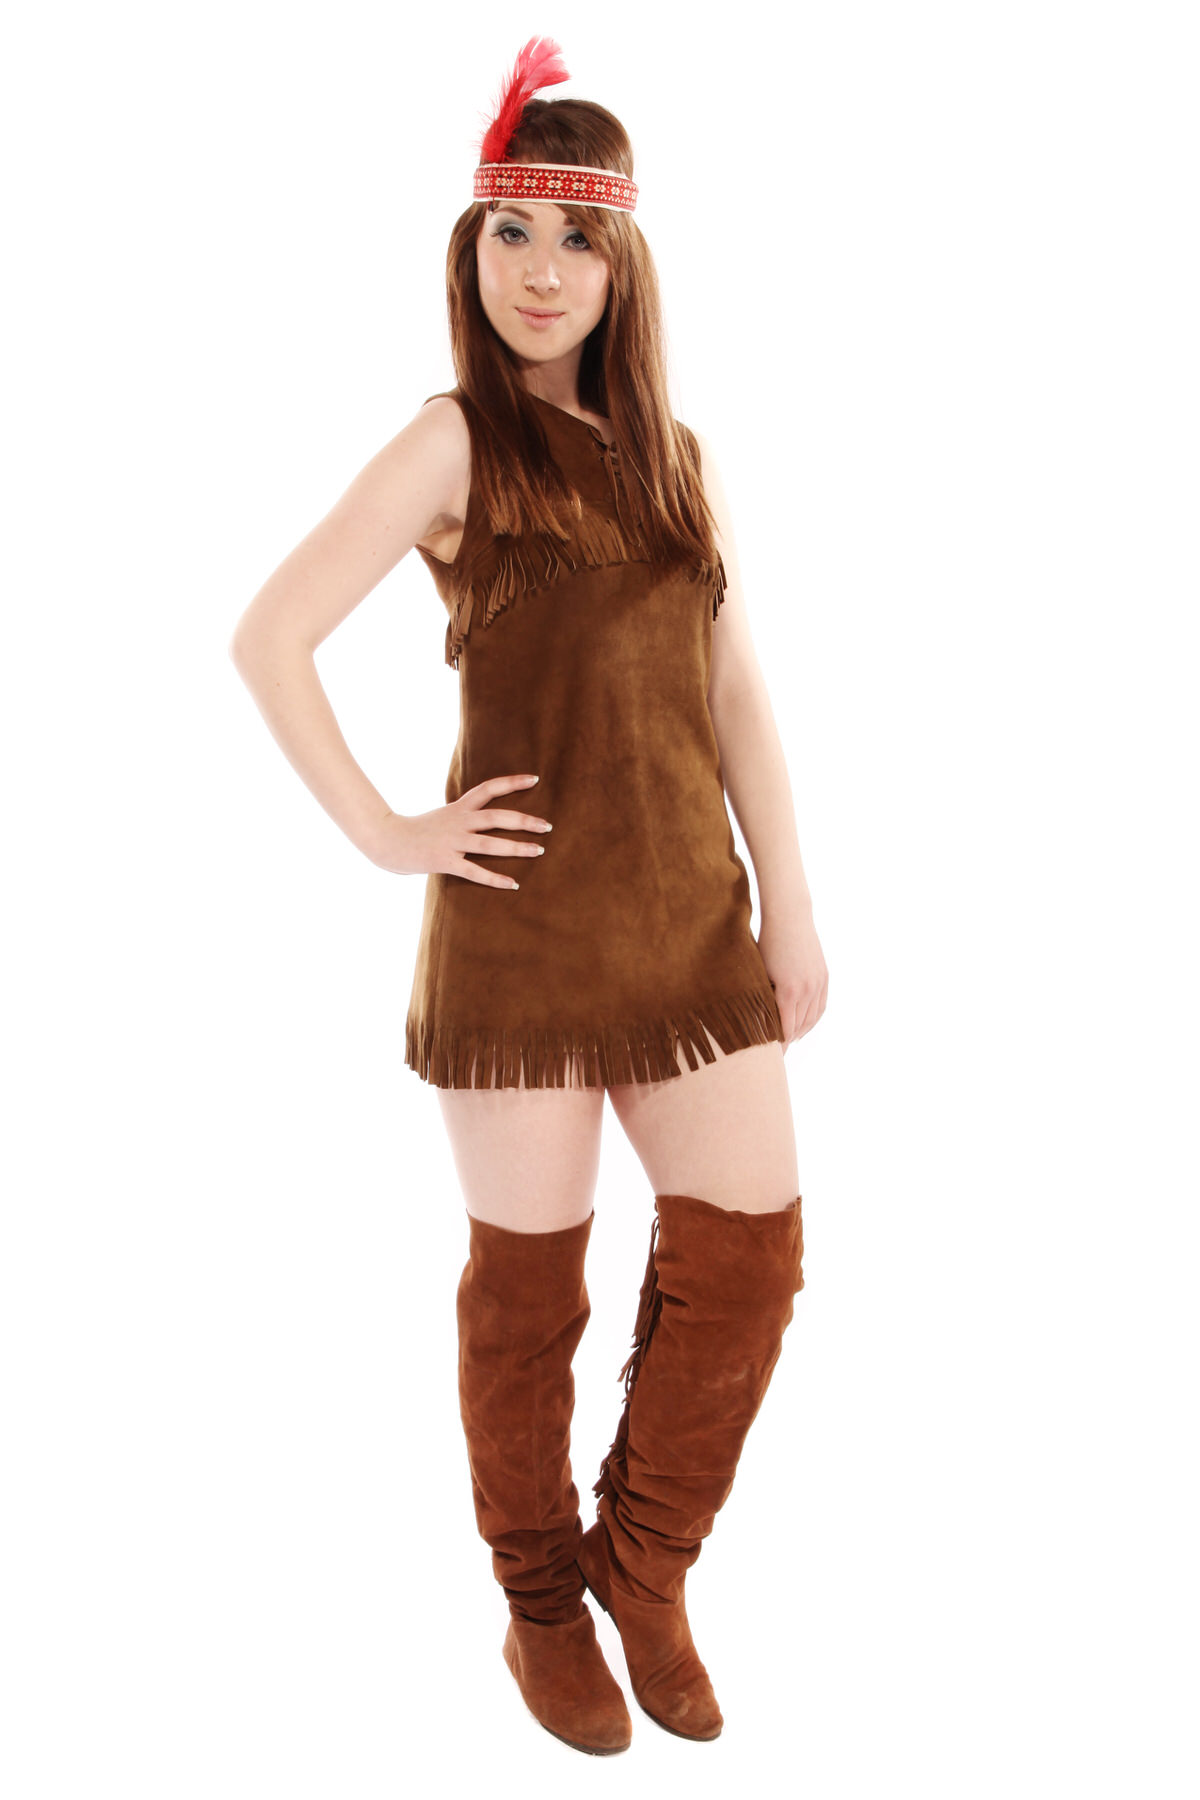 POCAHONTAS STYLE COSTUME W HEAD-DRESS OR FEATHERS